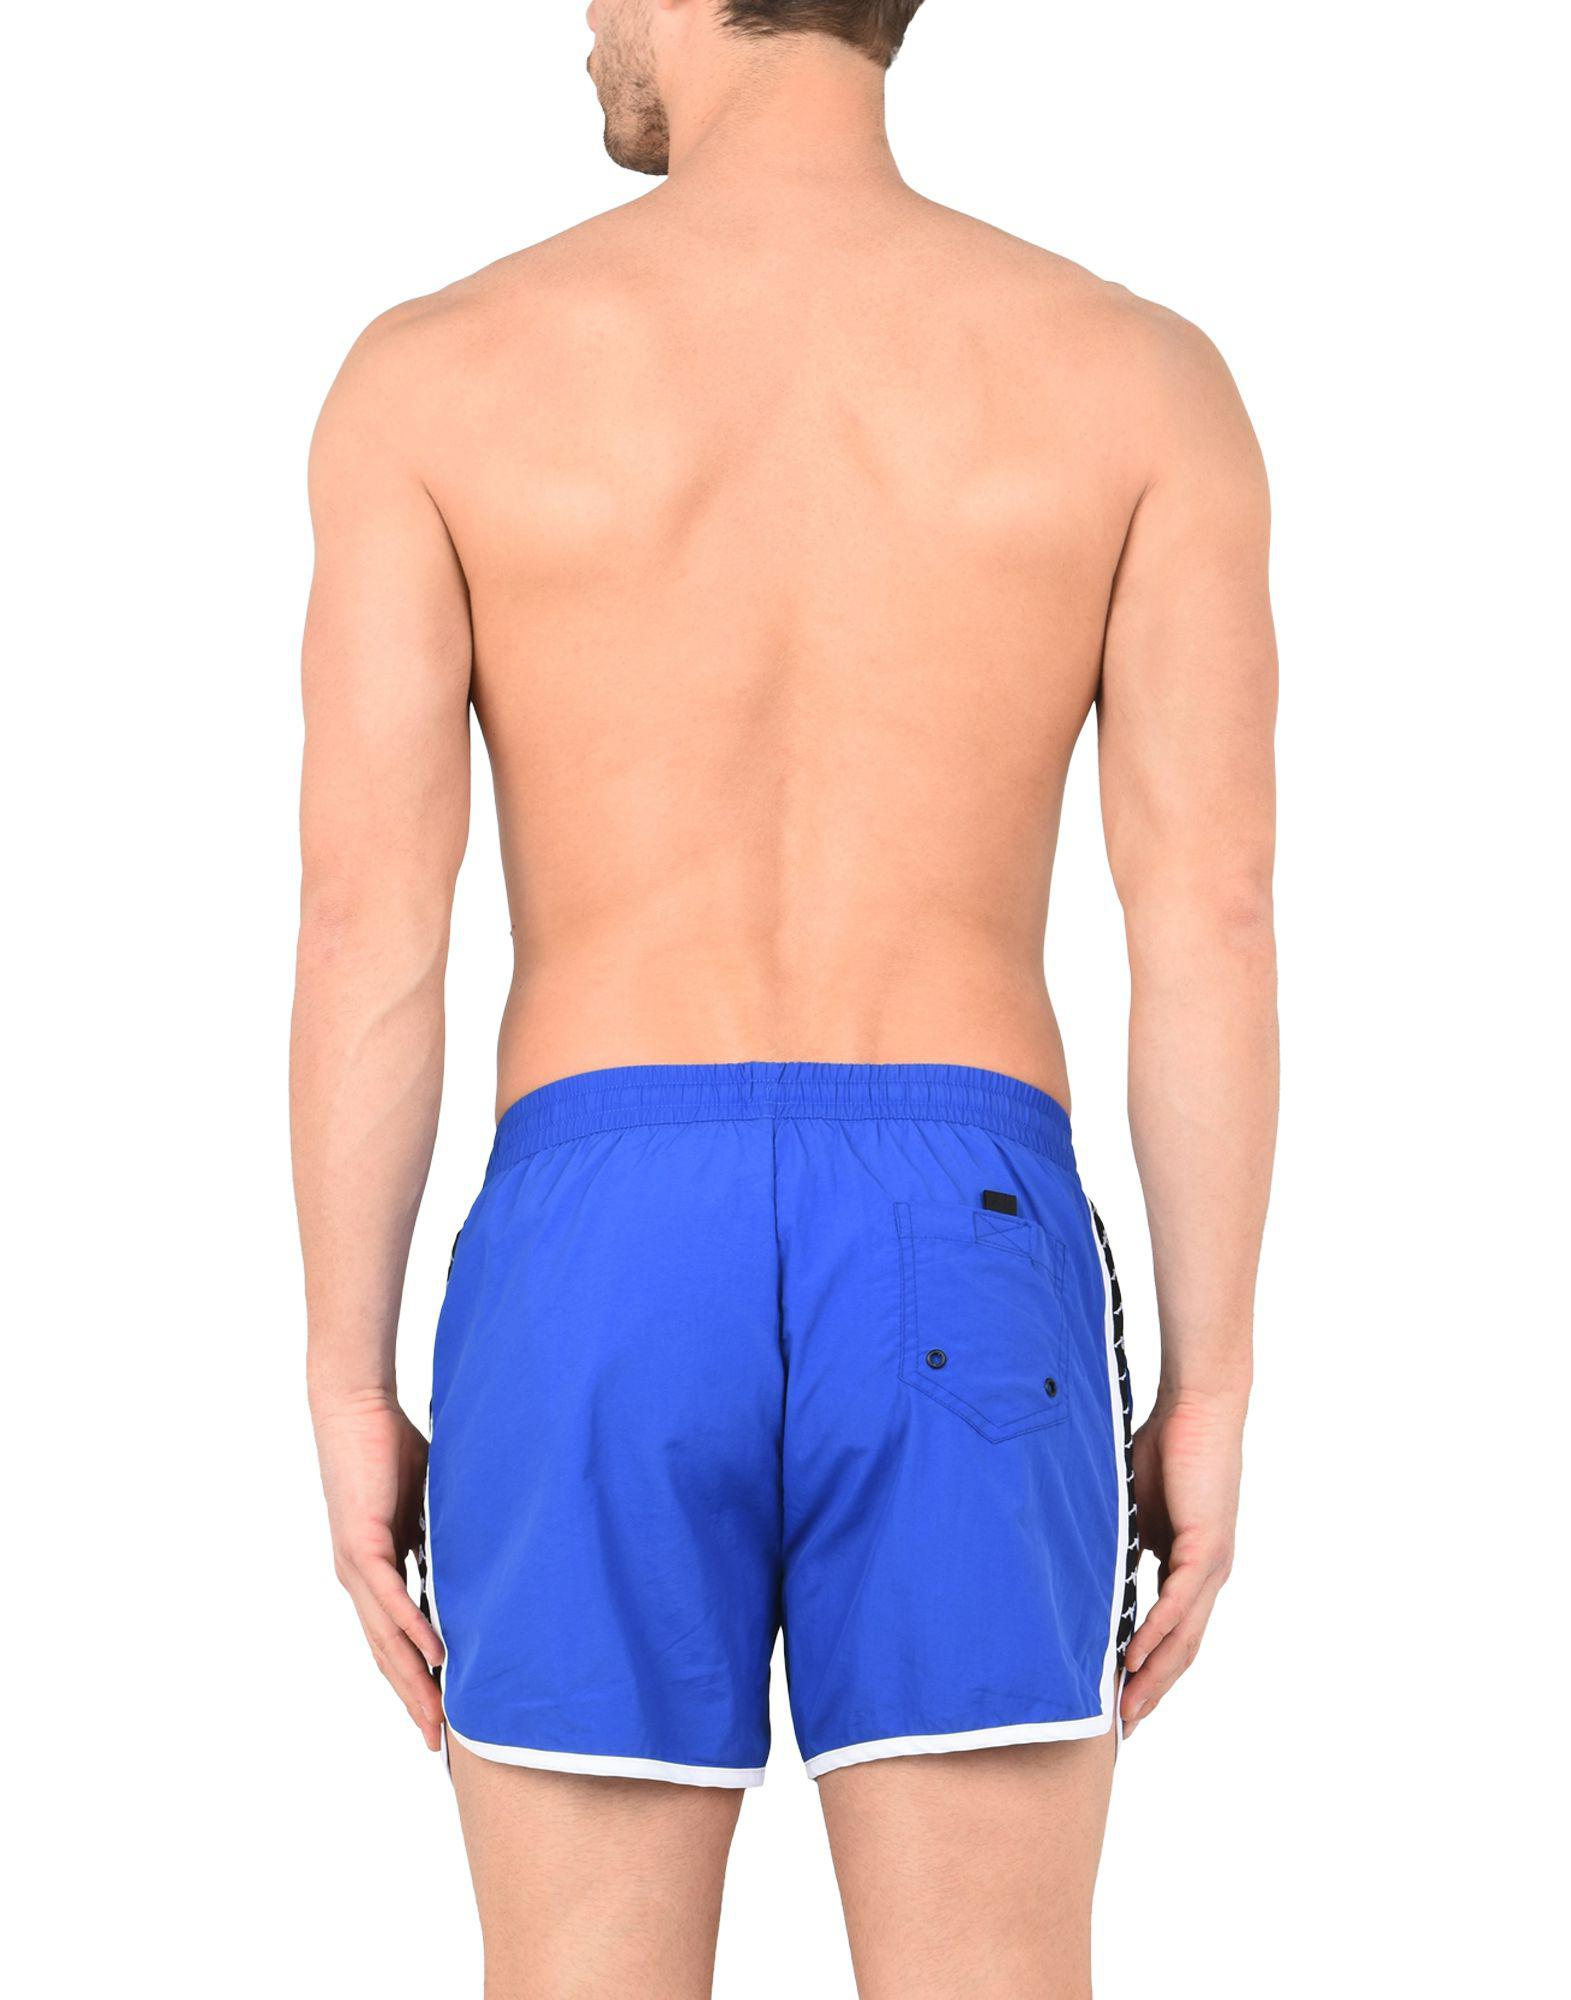 5fff87280b532 Kappa Swim Trunks in Blue for Men - Lyst